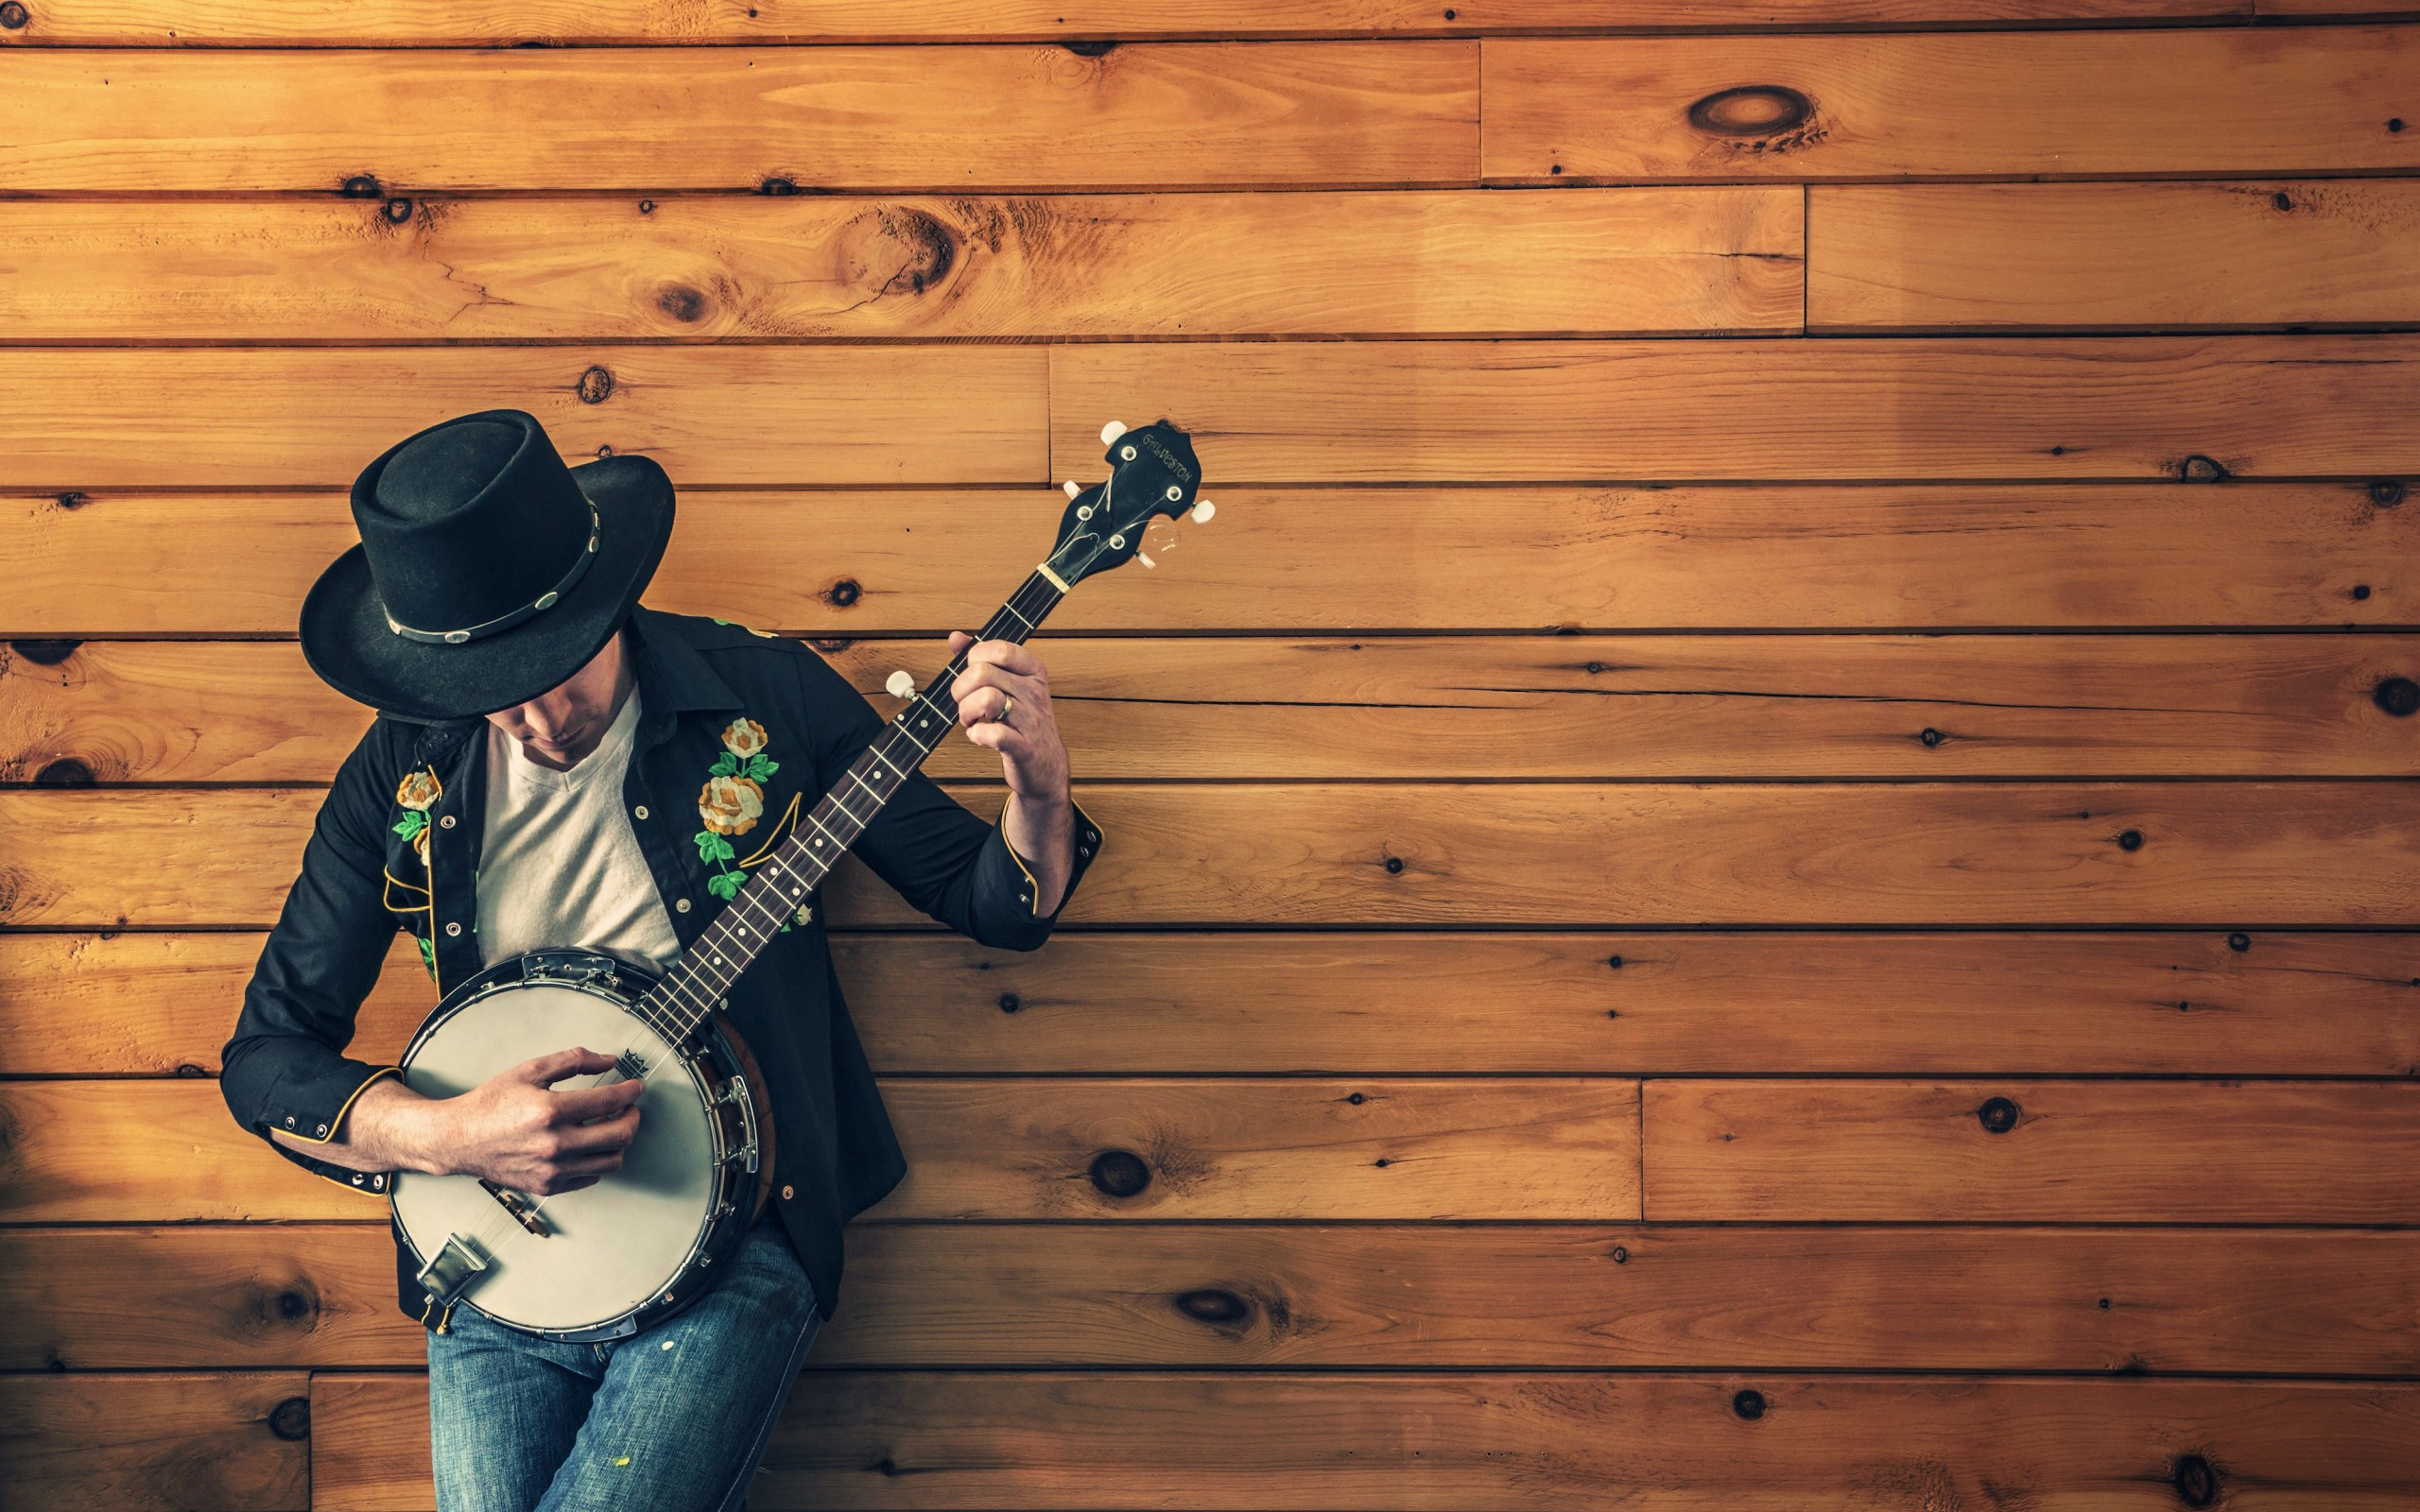 Banjo Player Wallpaper for Desktop 2560x1600